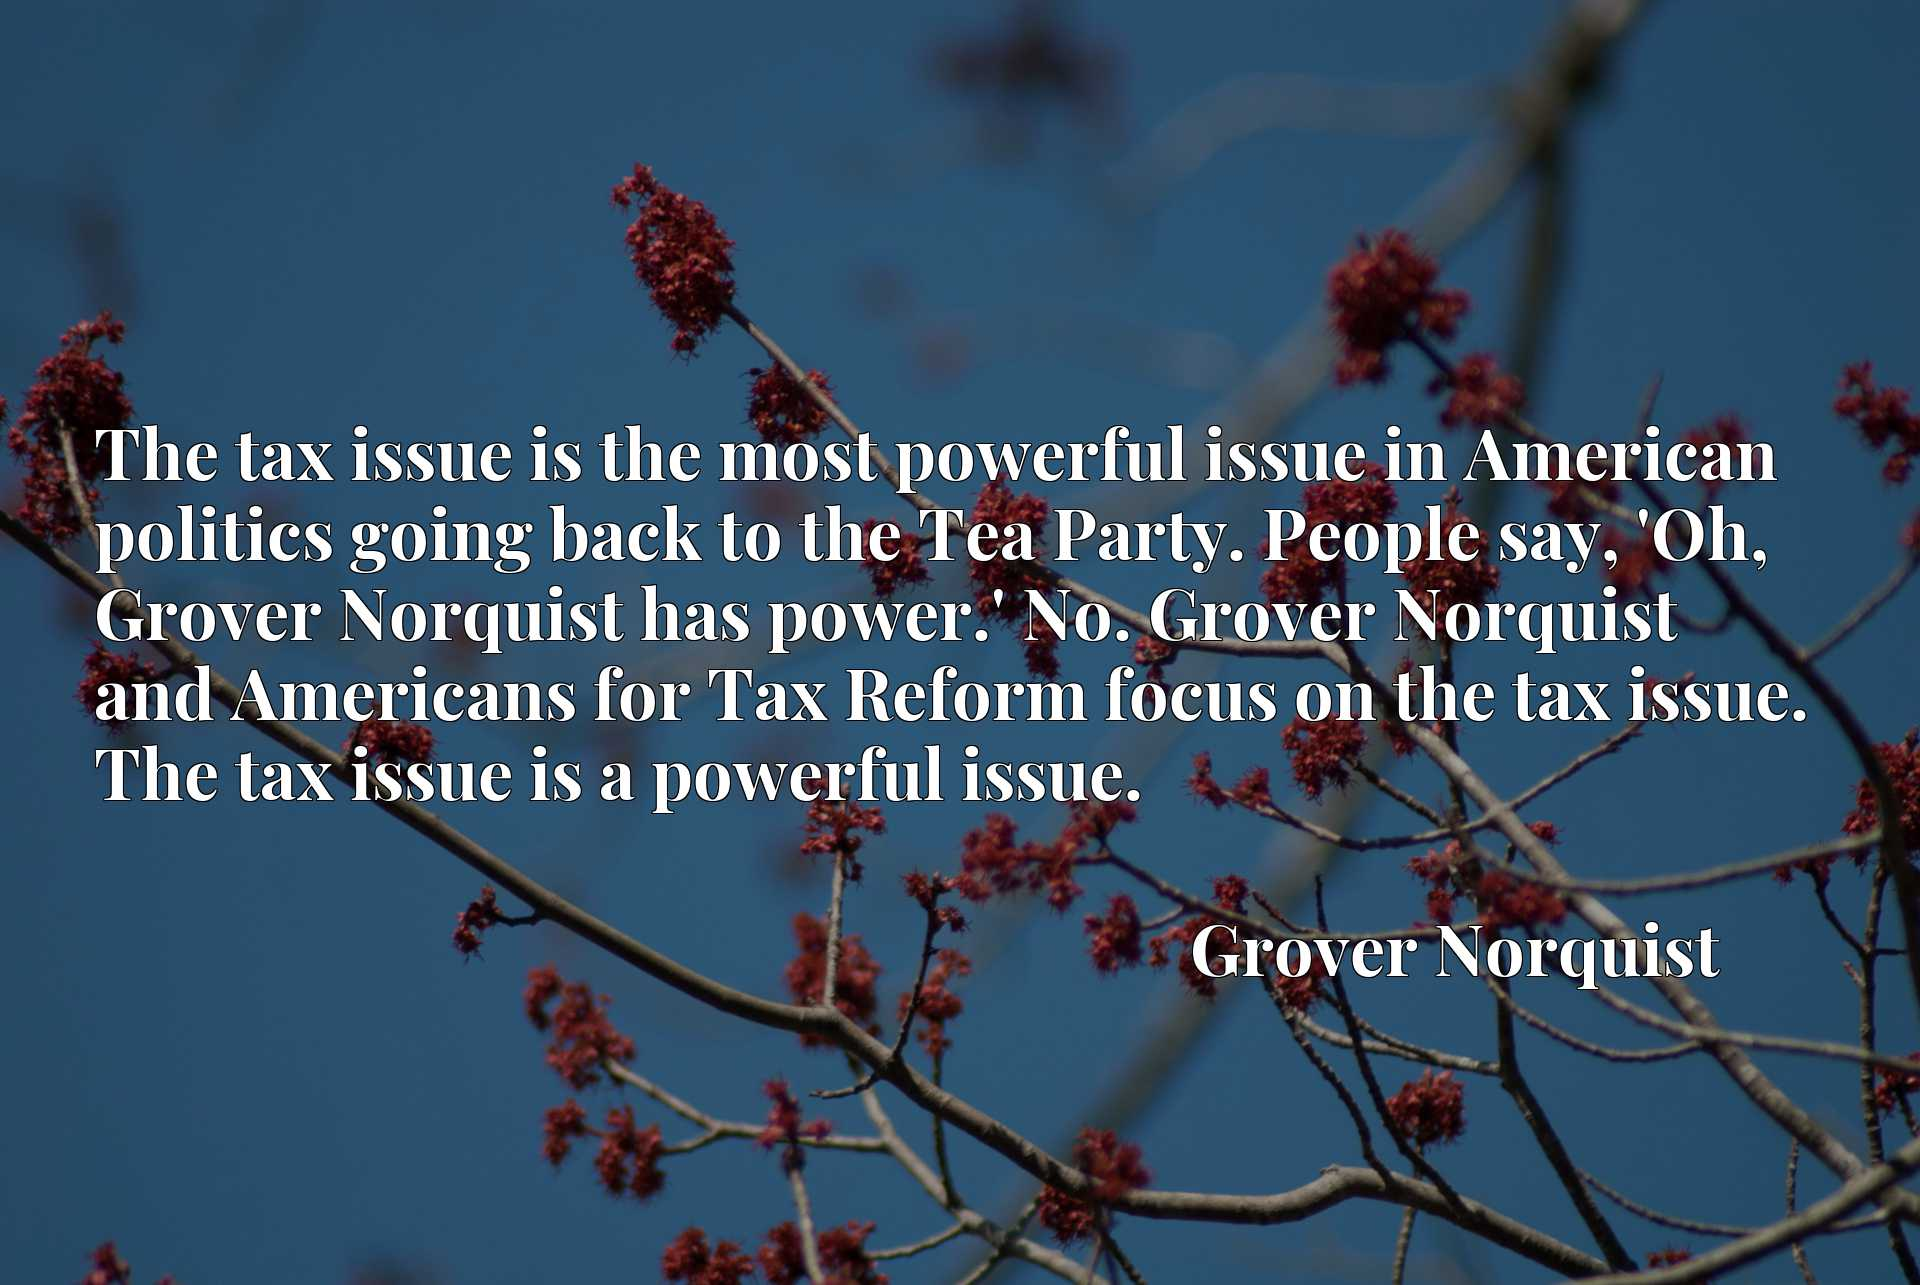 The tax issue is the most powerful issue in American politics going back to the Tea Party. People say, 'Oh, Grover Norquist has power.' No. Grover Norquist and Americans for Tax Reform focus on the tax issue. The tax issue is a powerful issue.